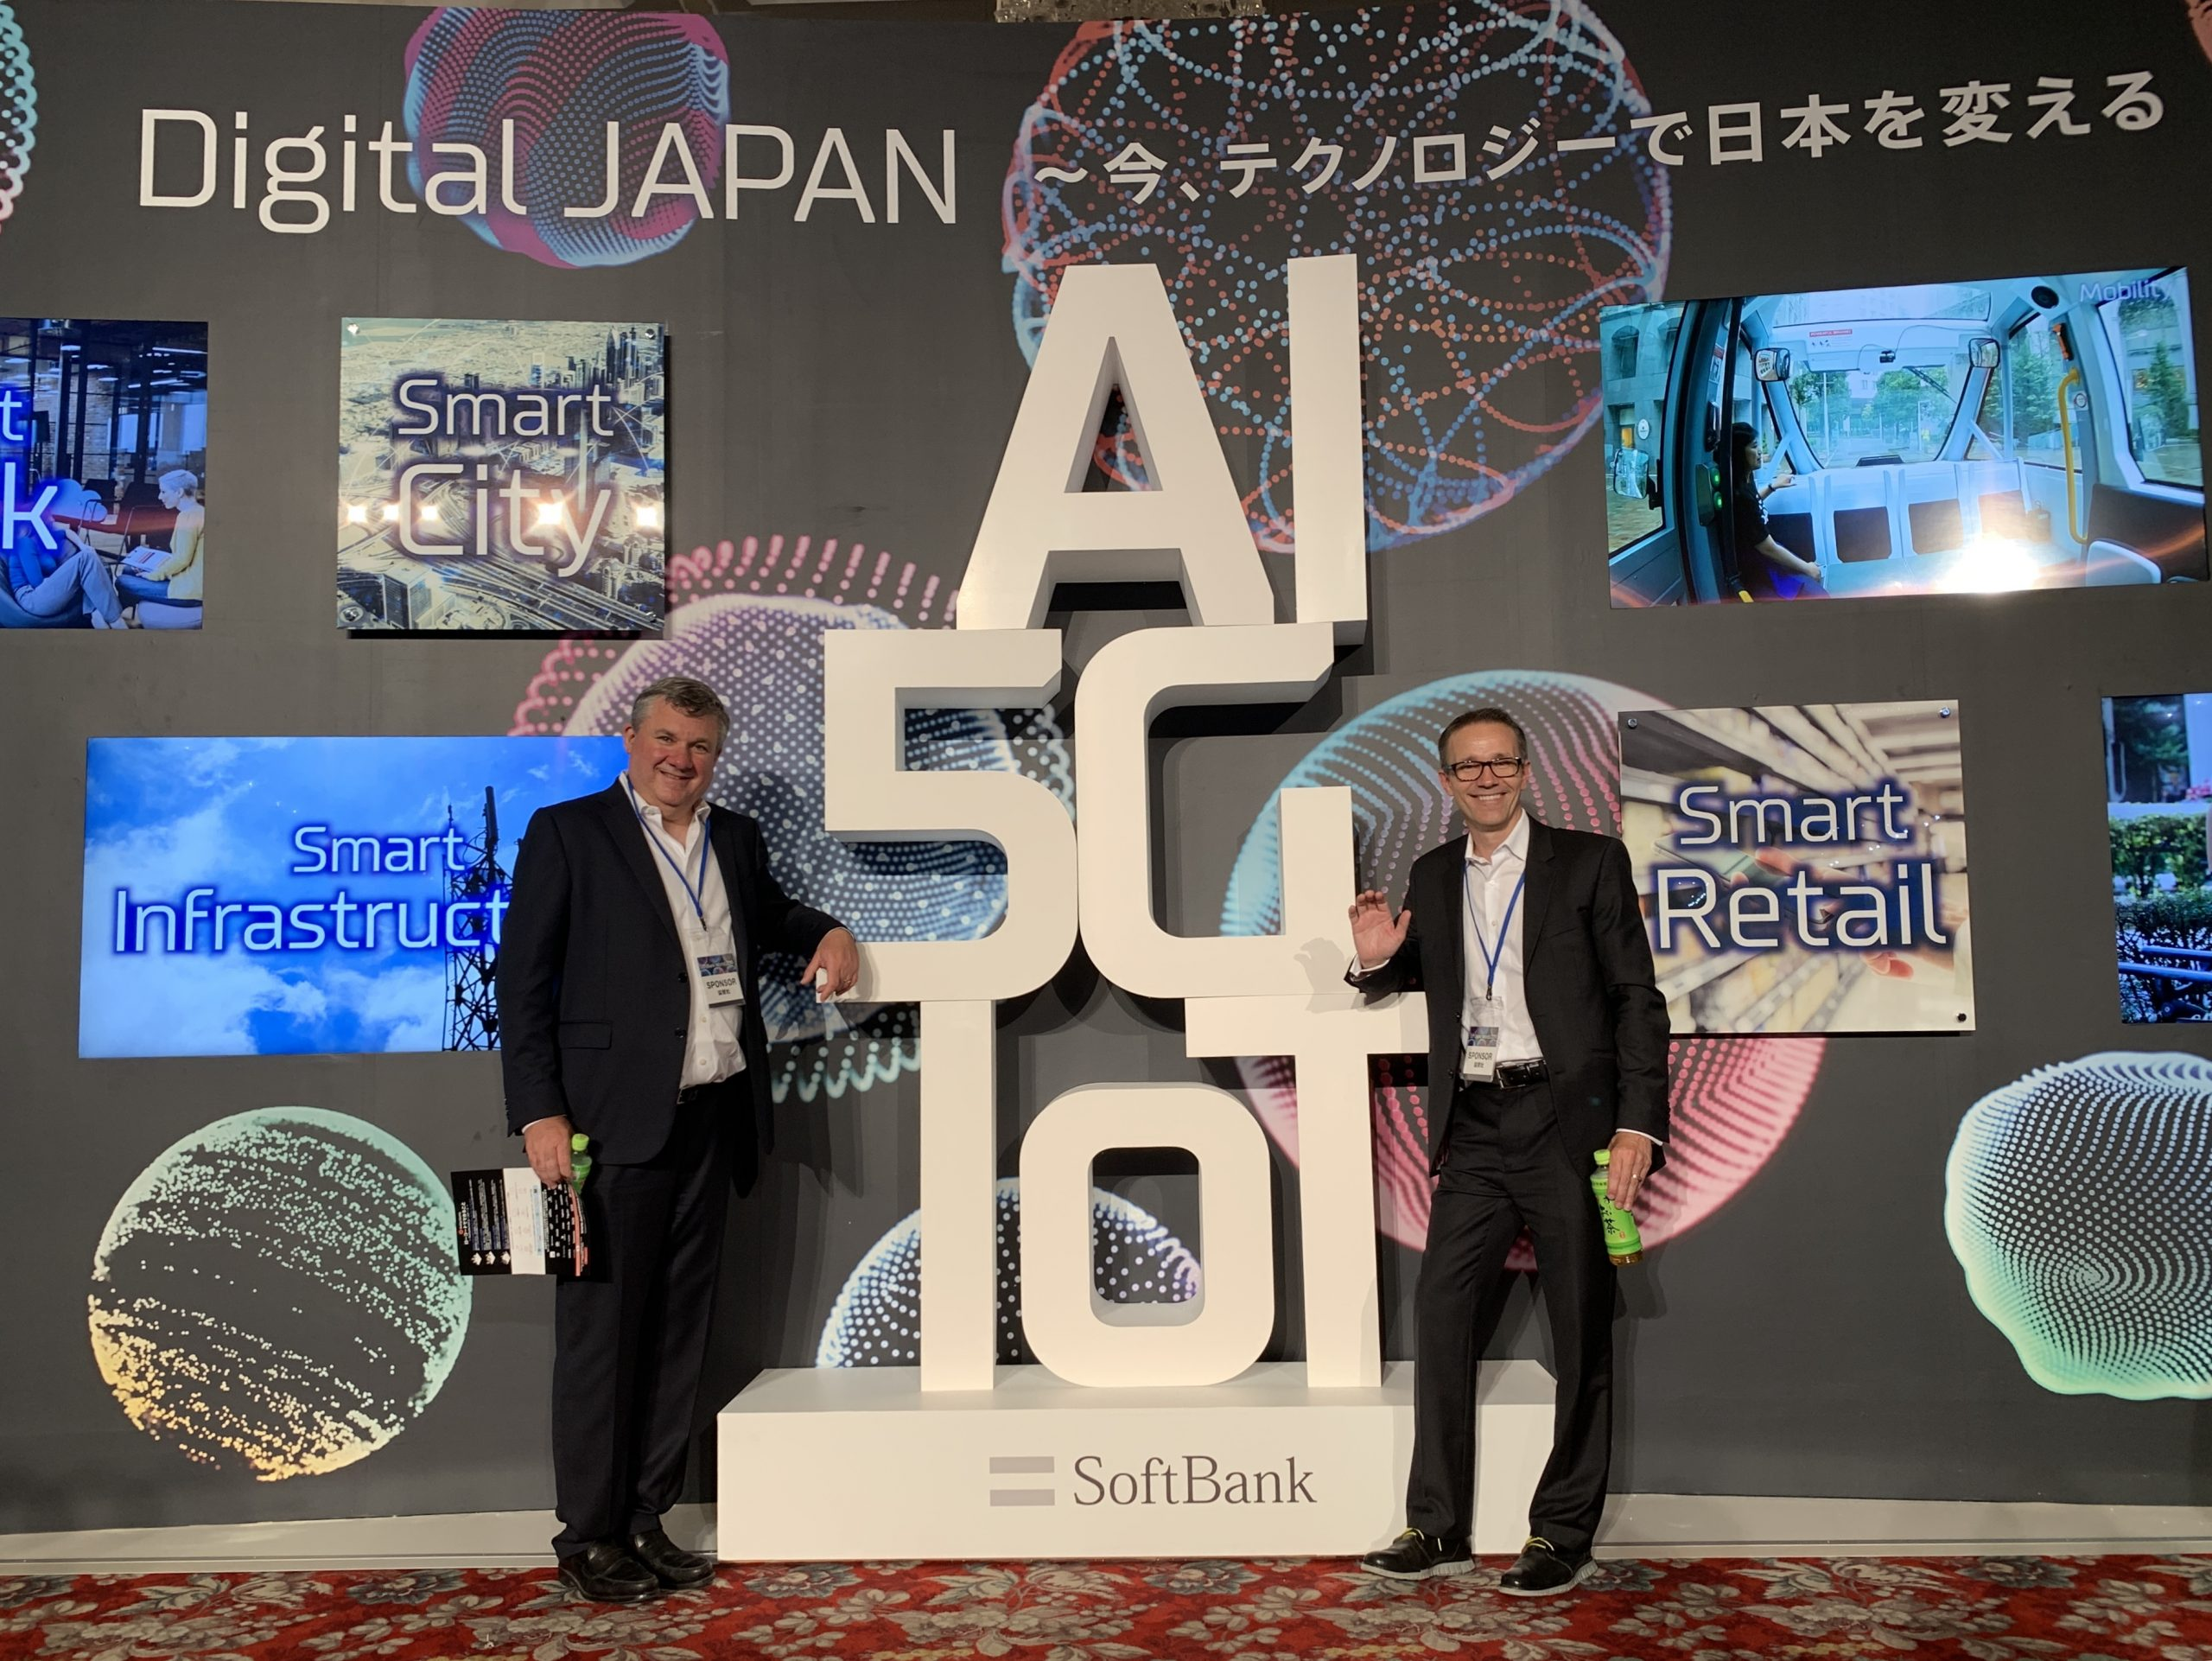 Blaine and Miguel of VANTIQ pose in front of SoftBank sign